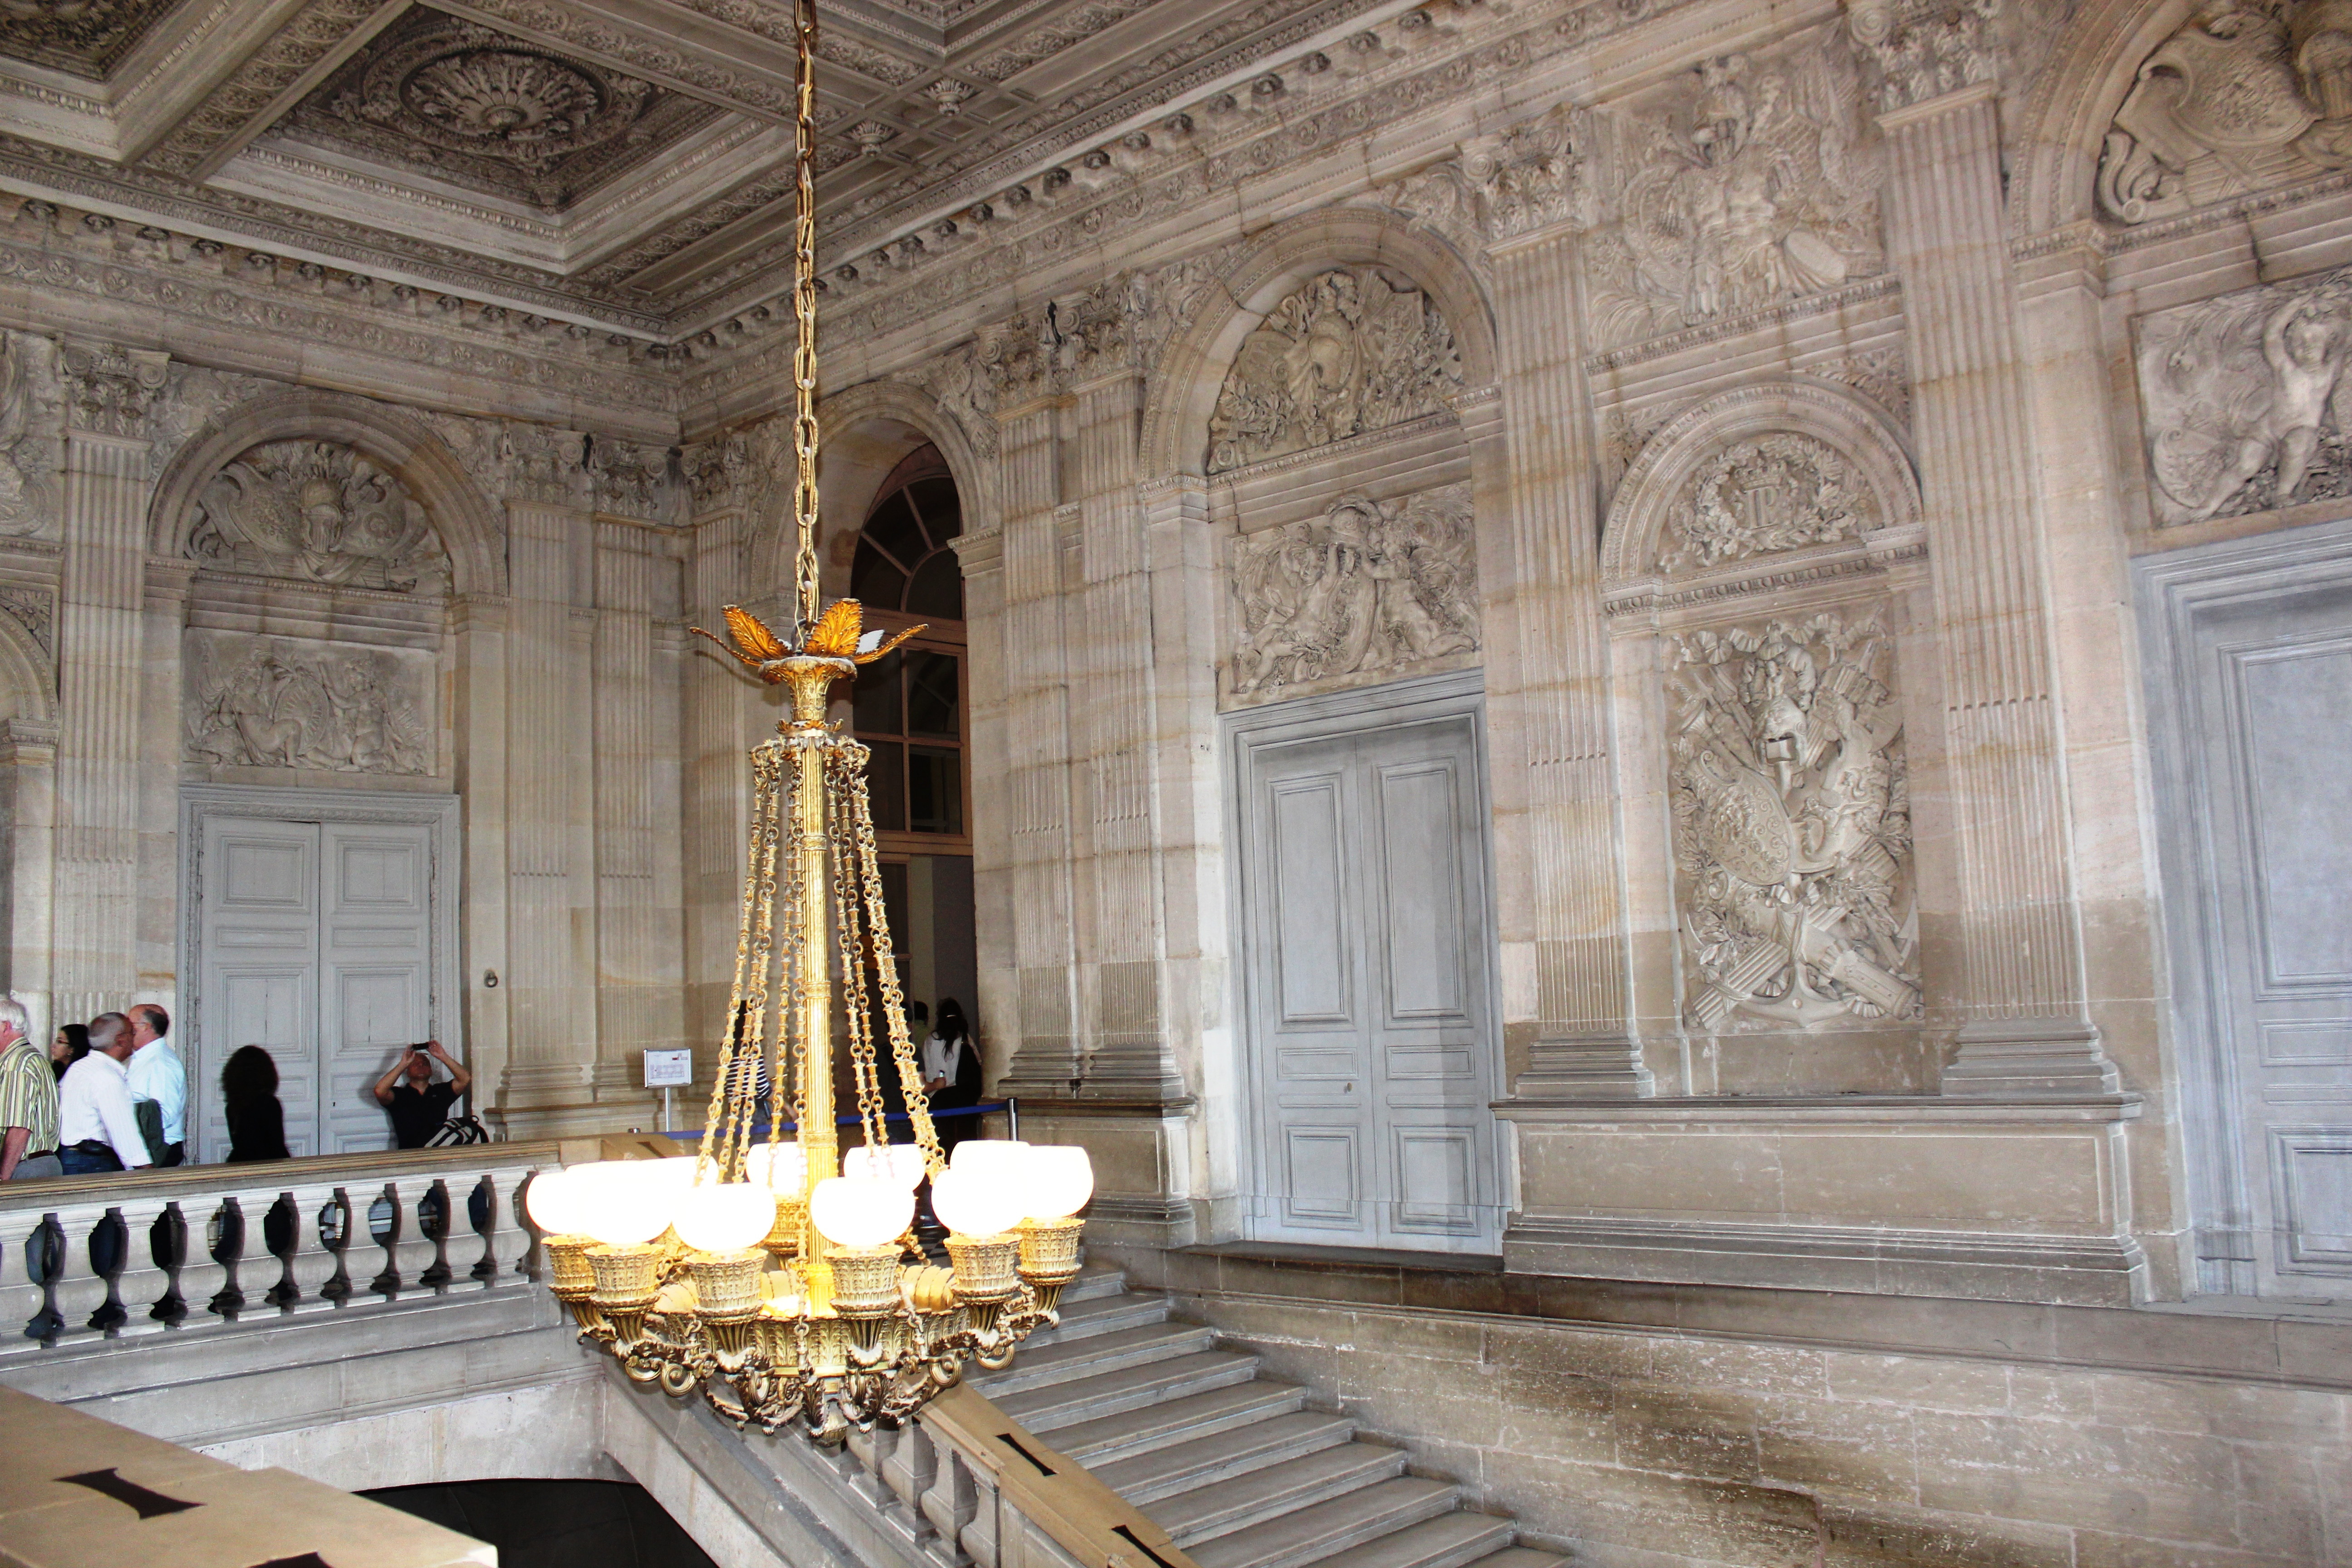 The Staircase Of Versailles Palace In France